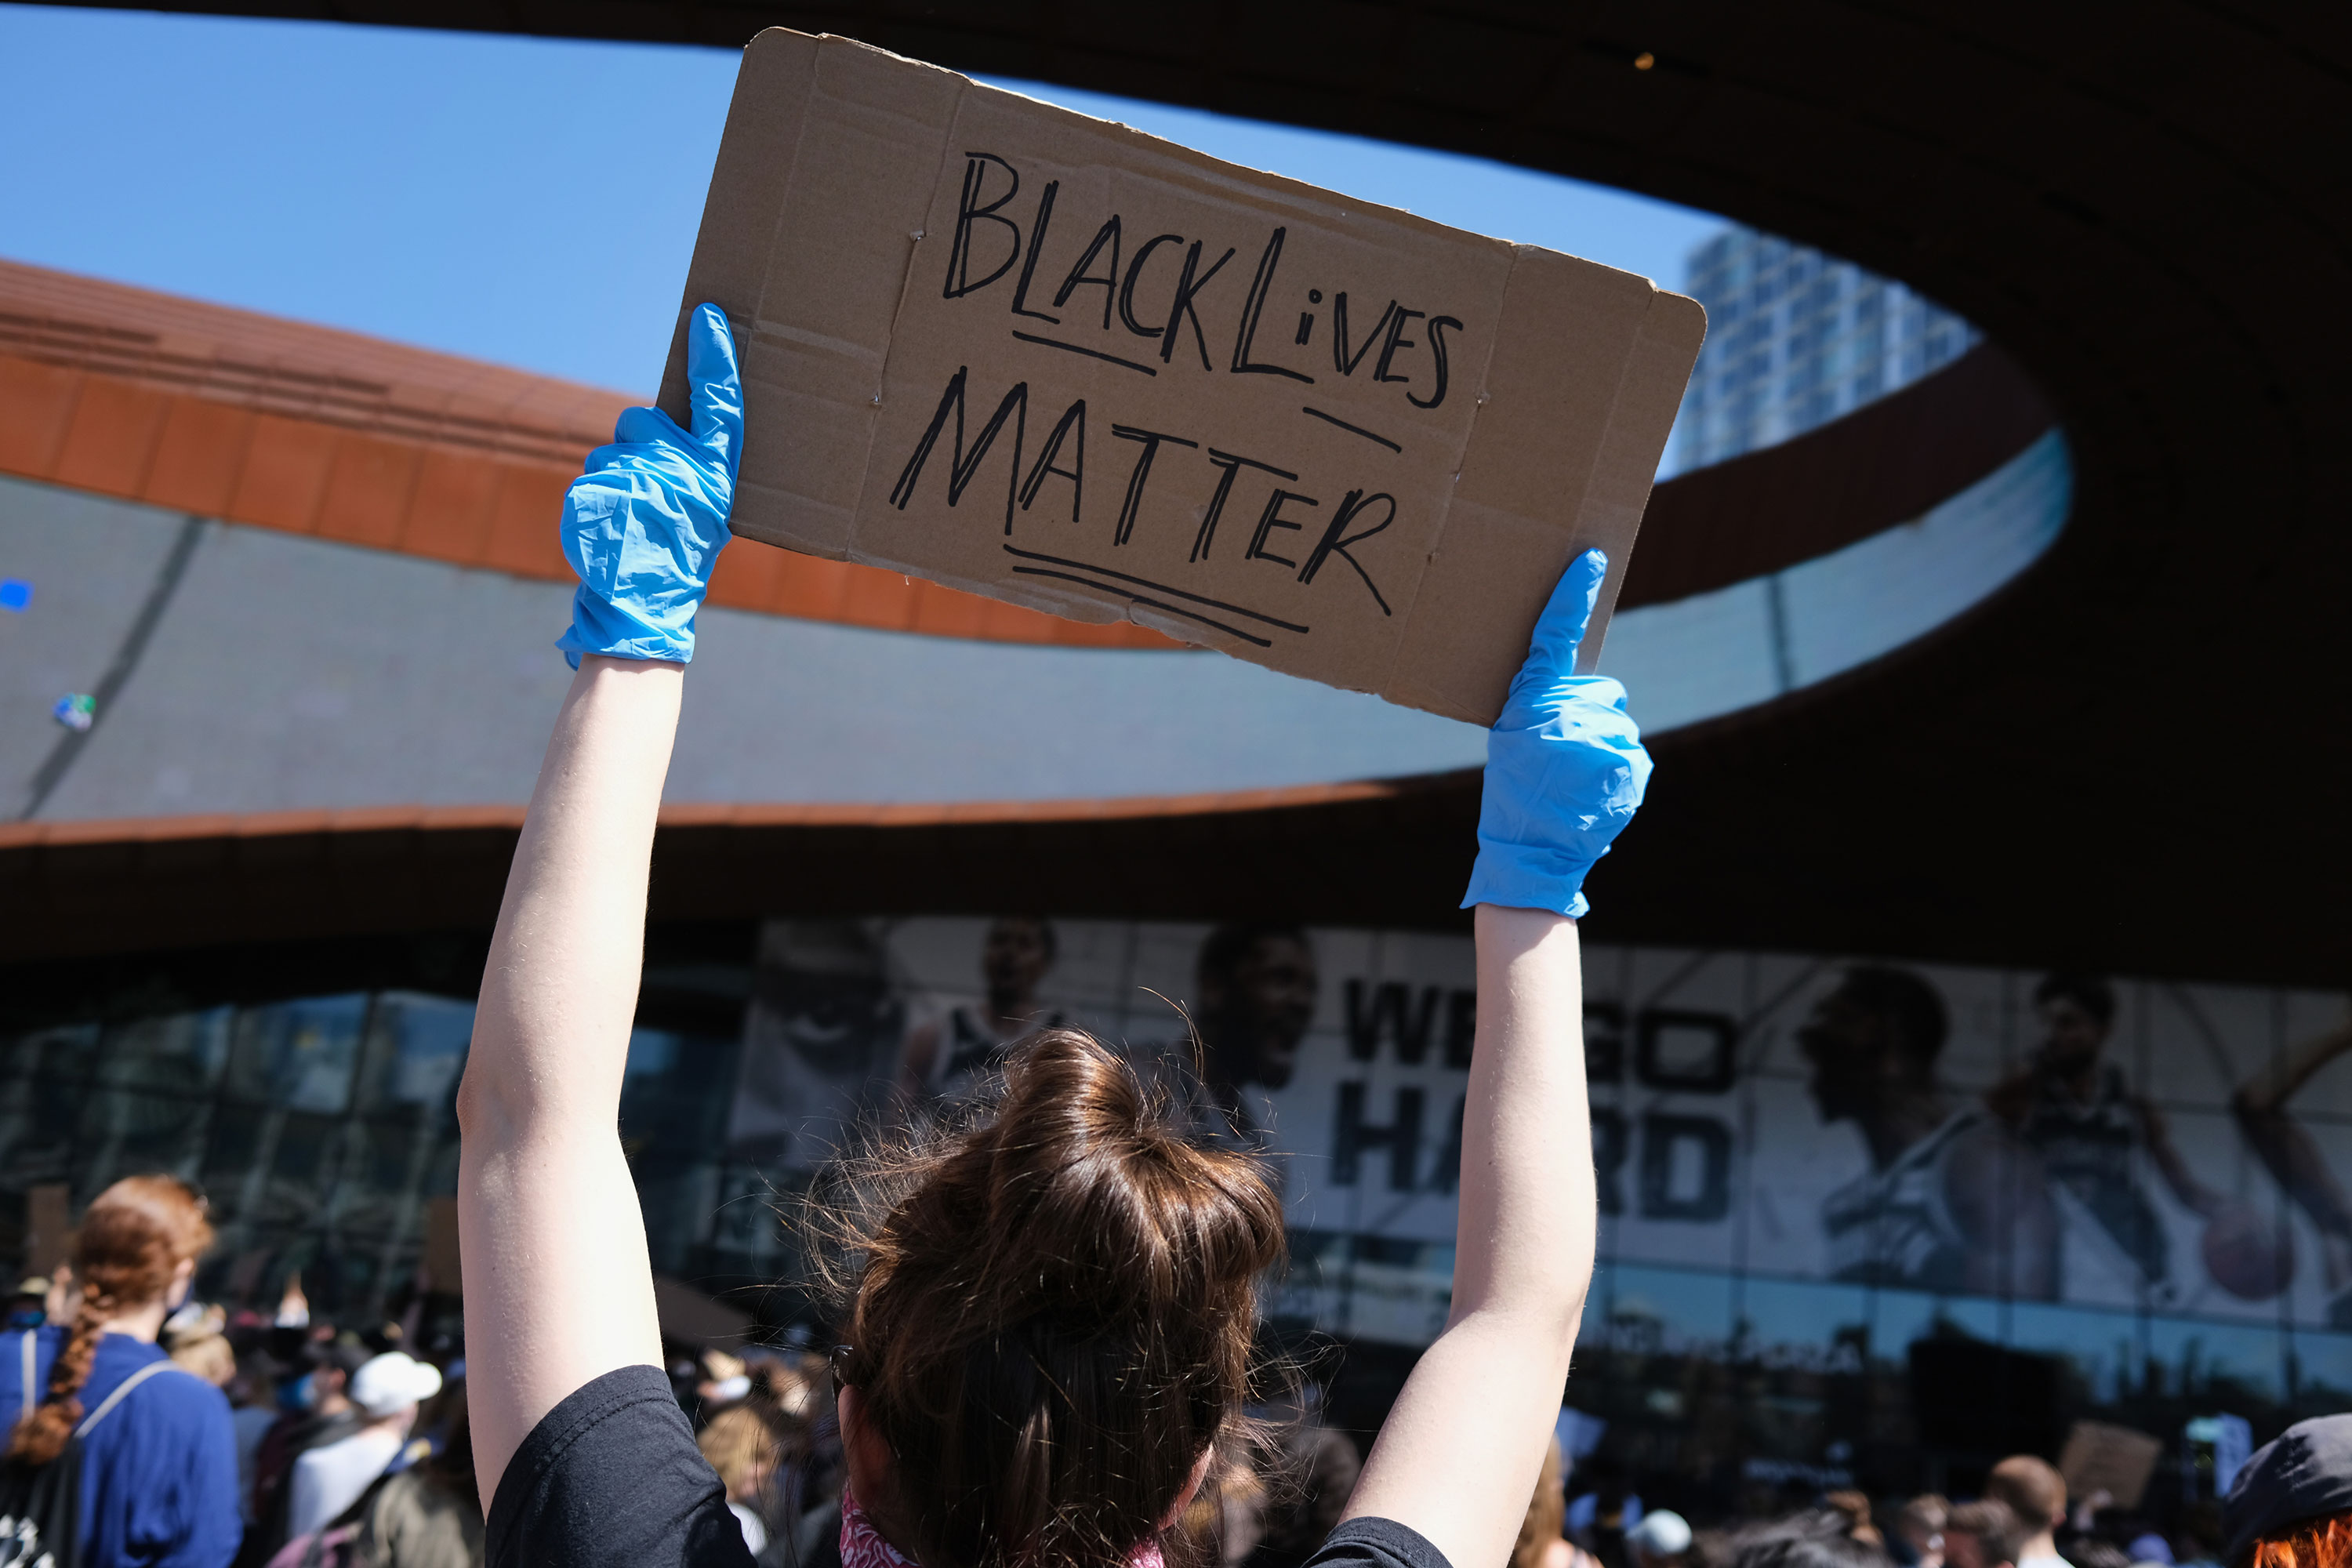 Protesters gather at Barclays Center in Brooklyn on May 31 in New York City.